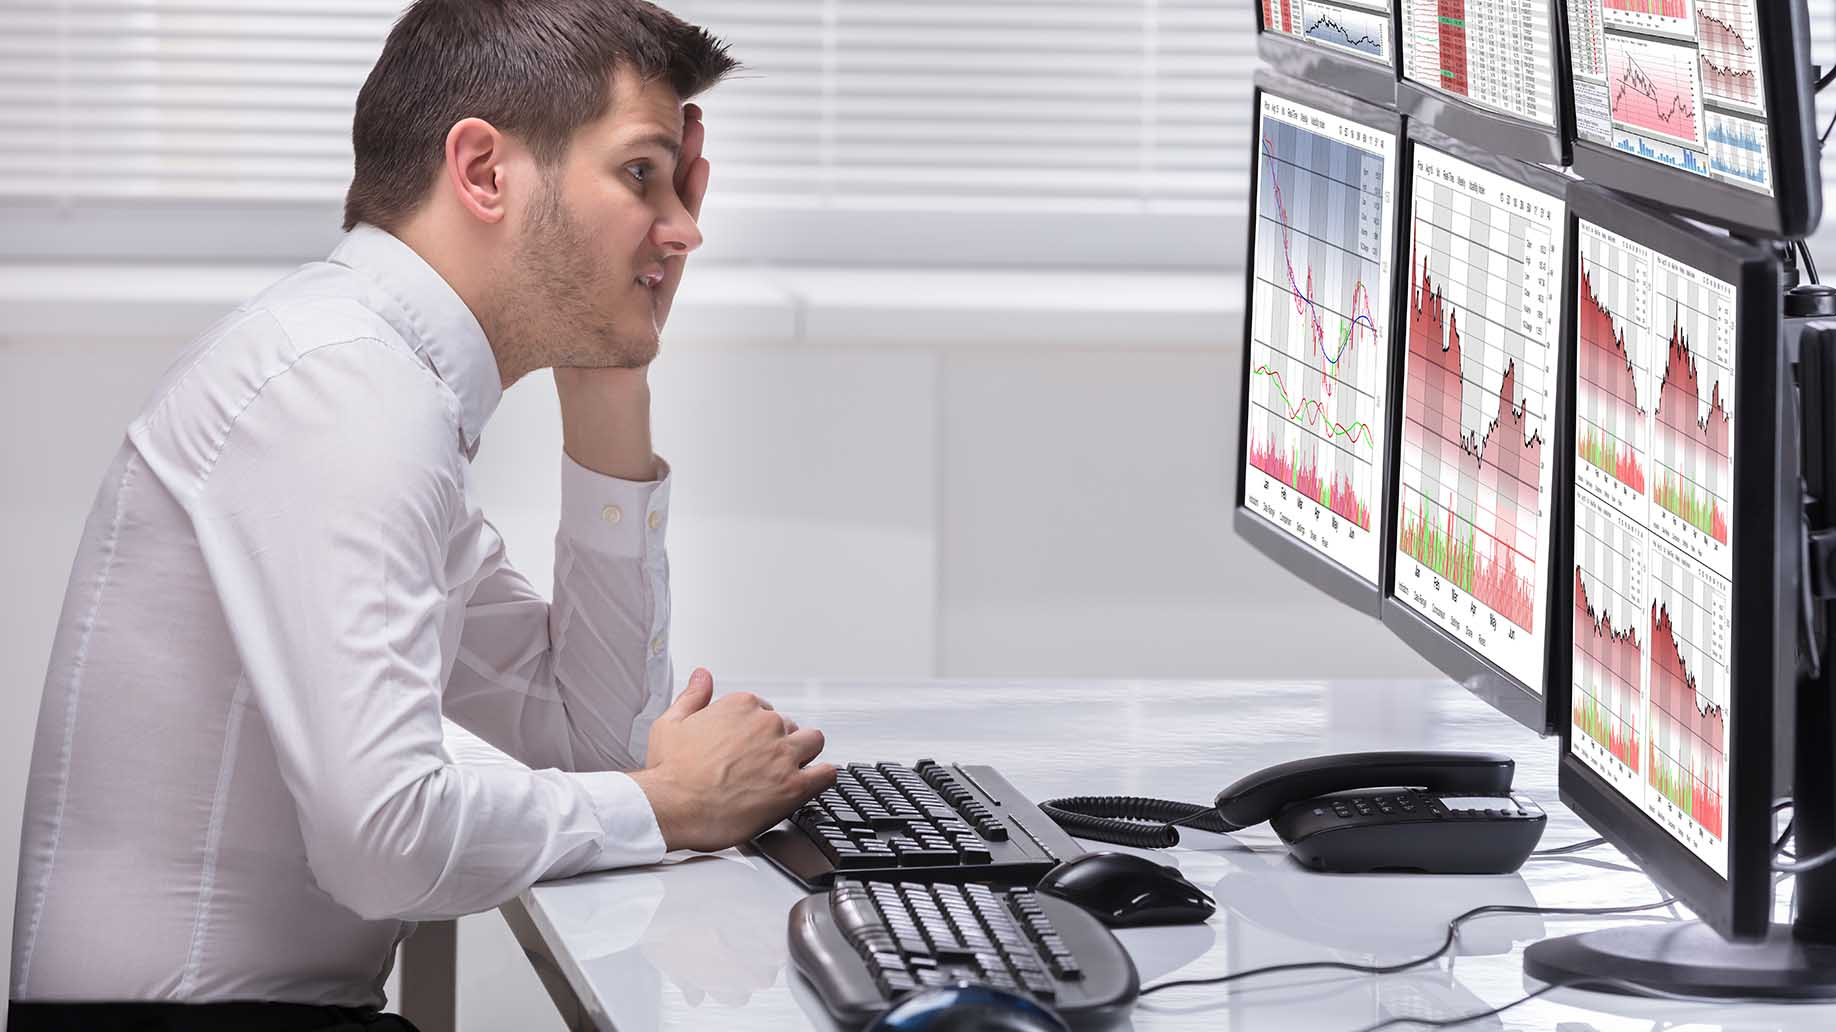 stressed young man operator looking at graphs on computer screens